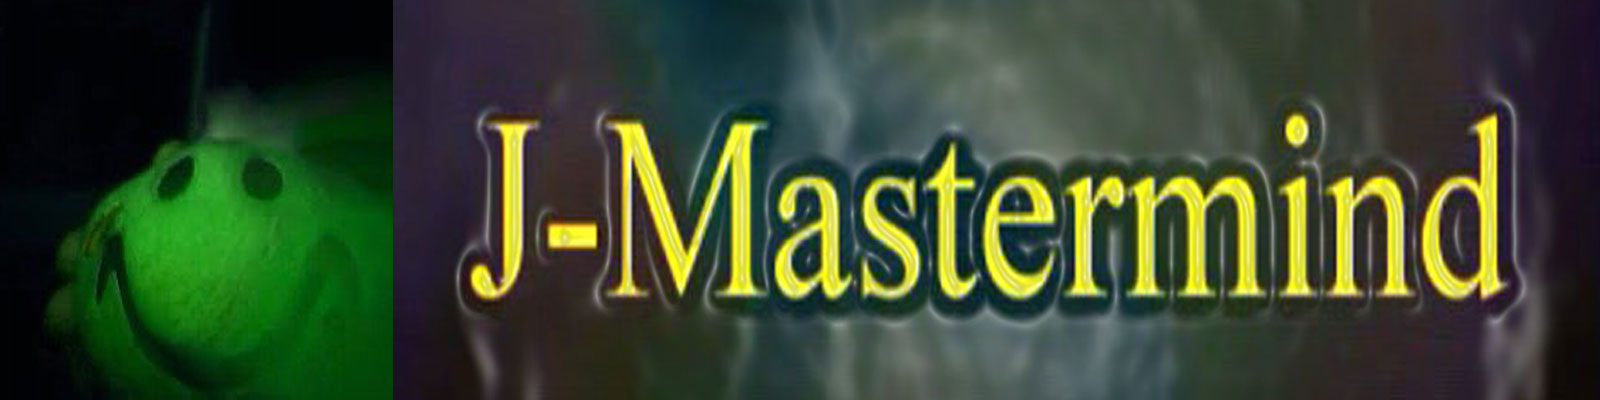 J-Mastermind audio cd cover artwork